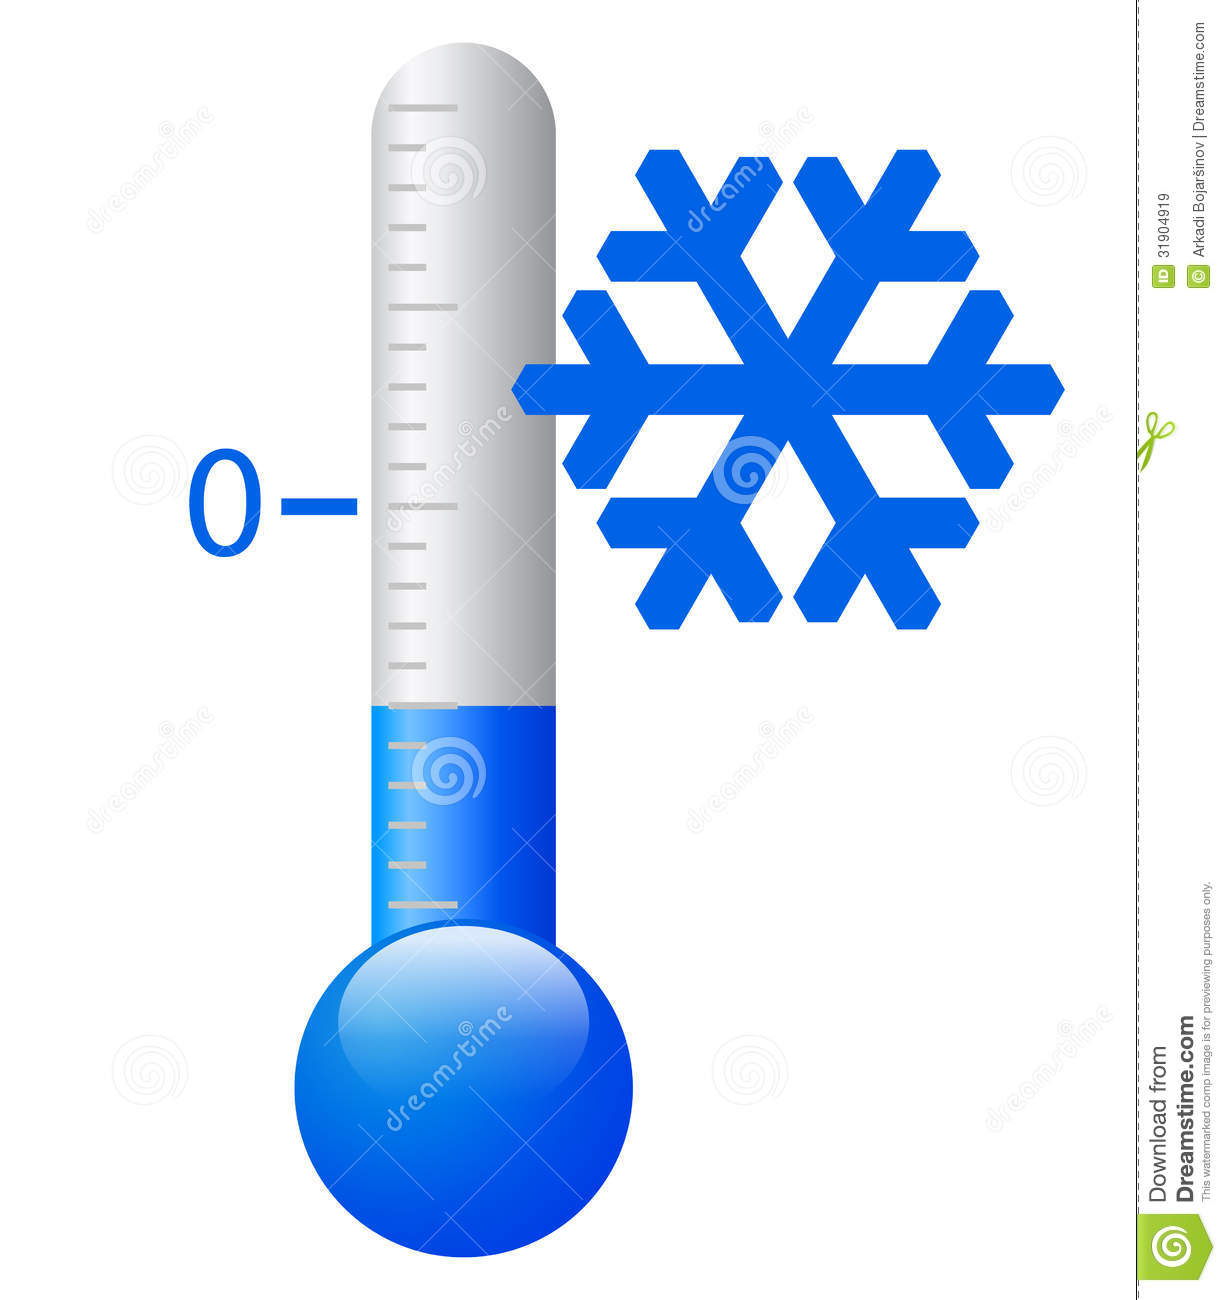 Coldness clipart #12, Download drawings